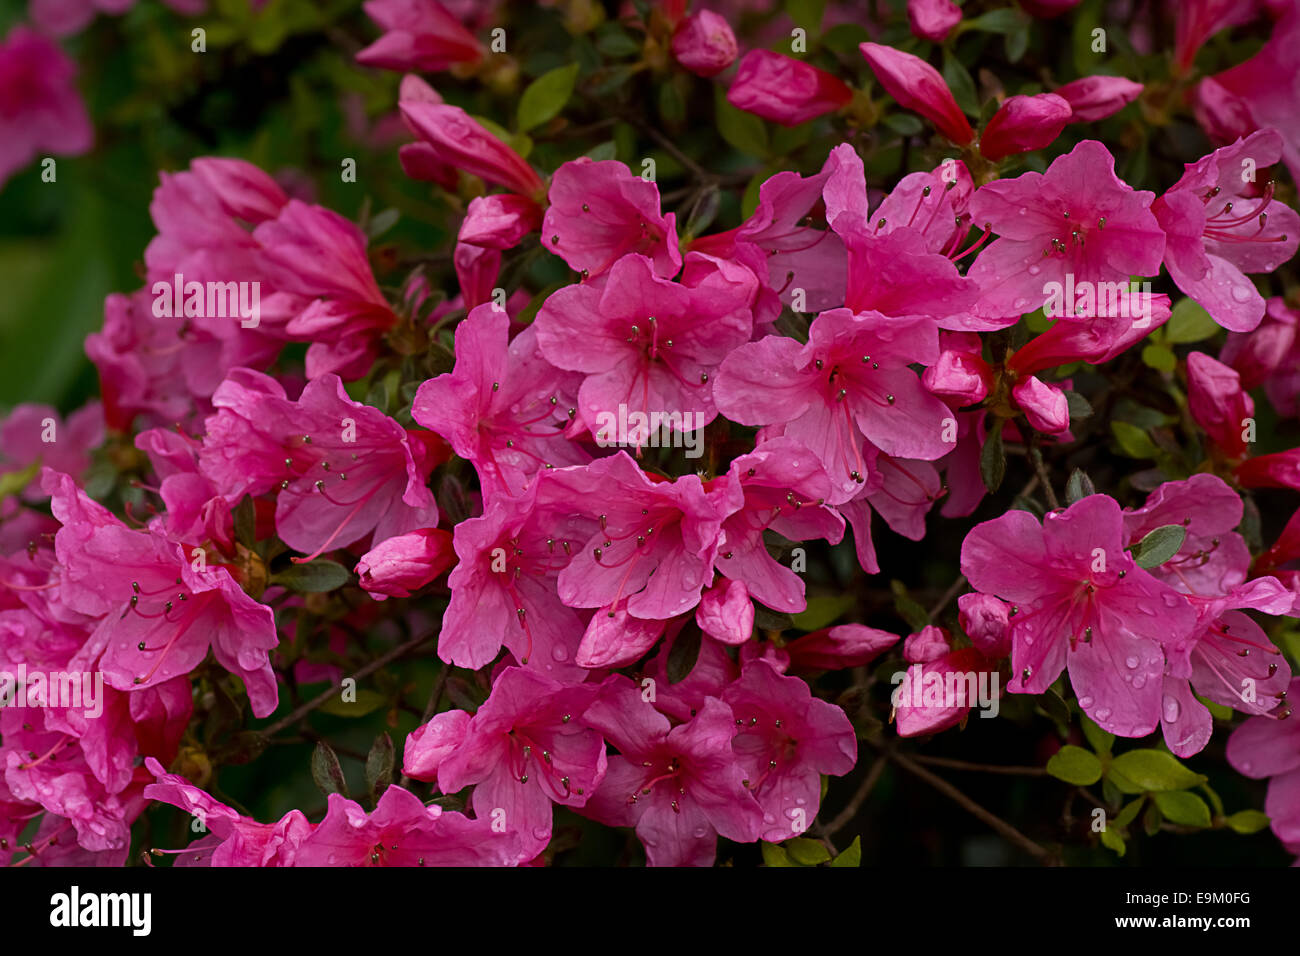 Pink Azalea Flowers And Water Droplets Stock Photo 74812852 Alamy